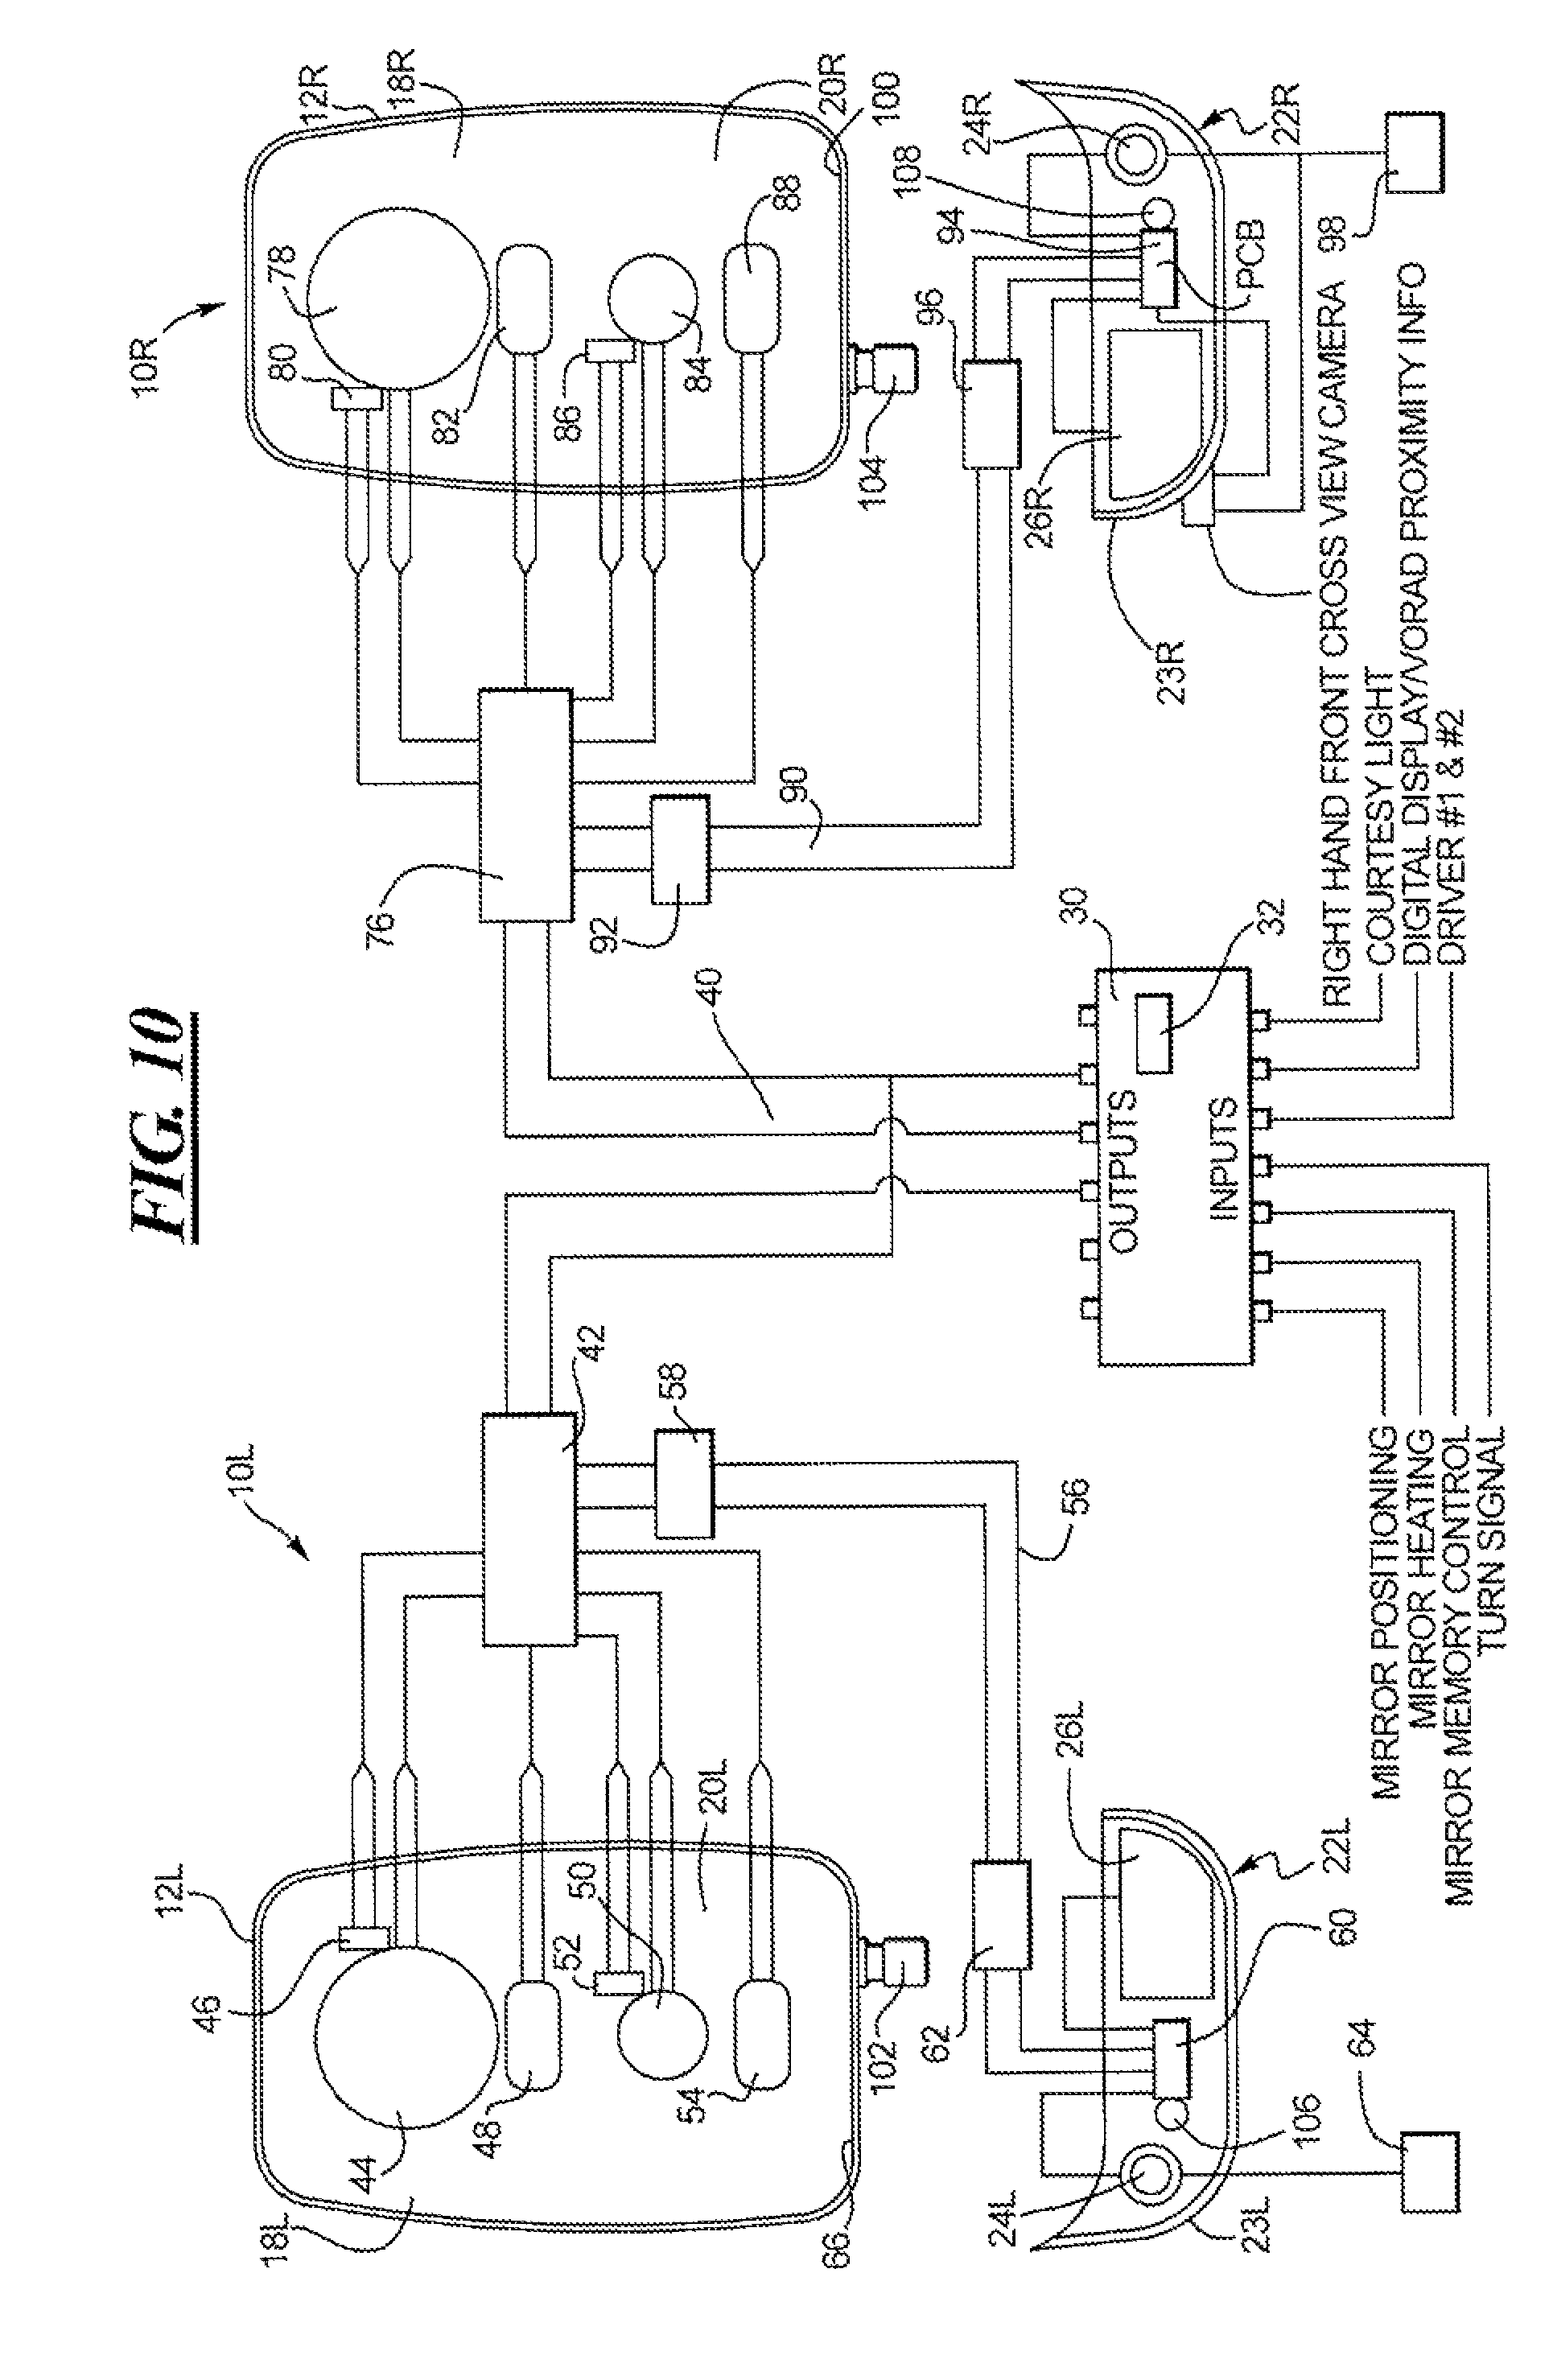 US08602573 20131210 D00007 velvac mirror wiring diagram velvac power mirror switch \u2022 wiring adams rite 4300 wiring diagram at panicattacktreatment.co